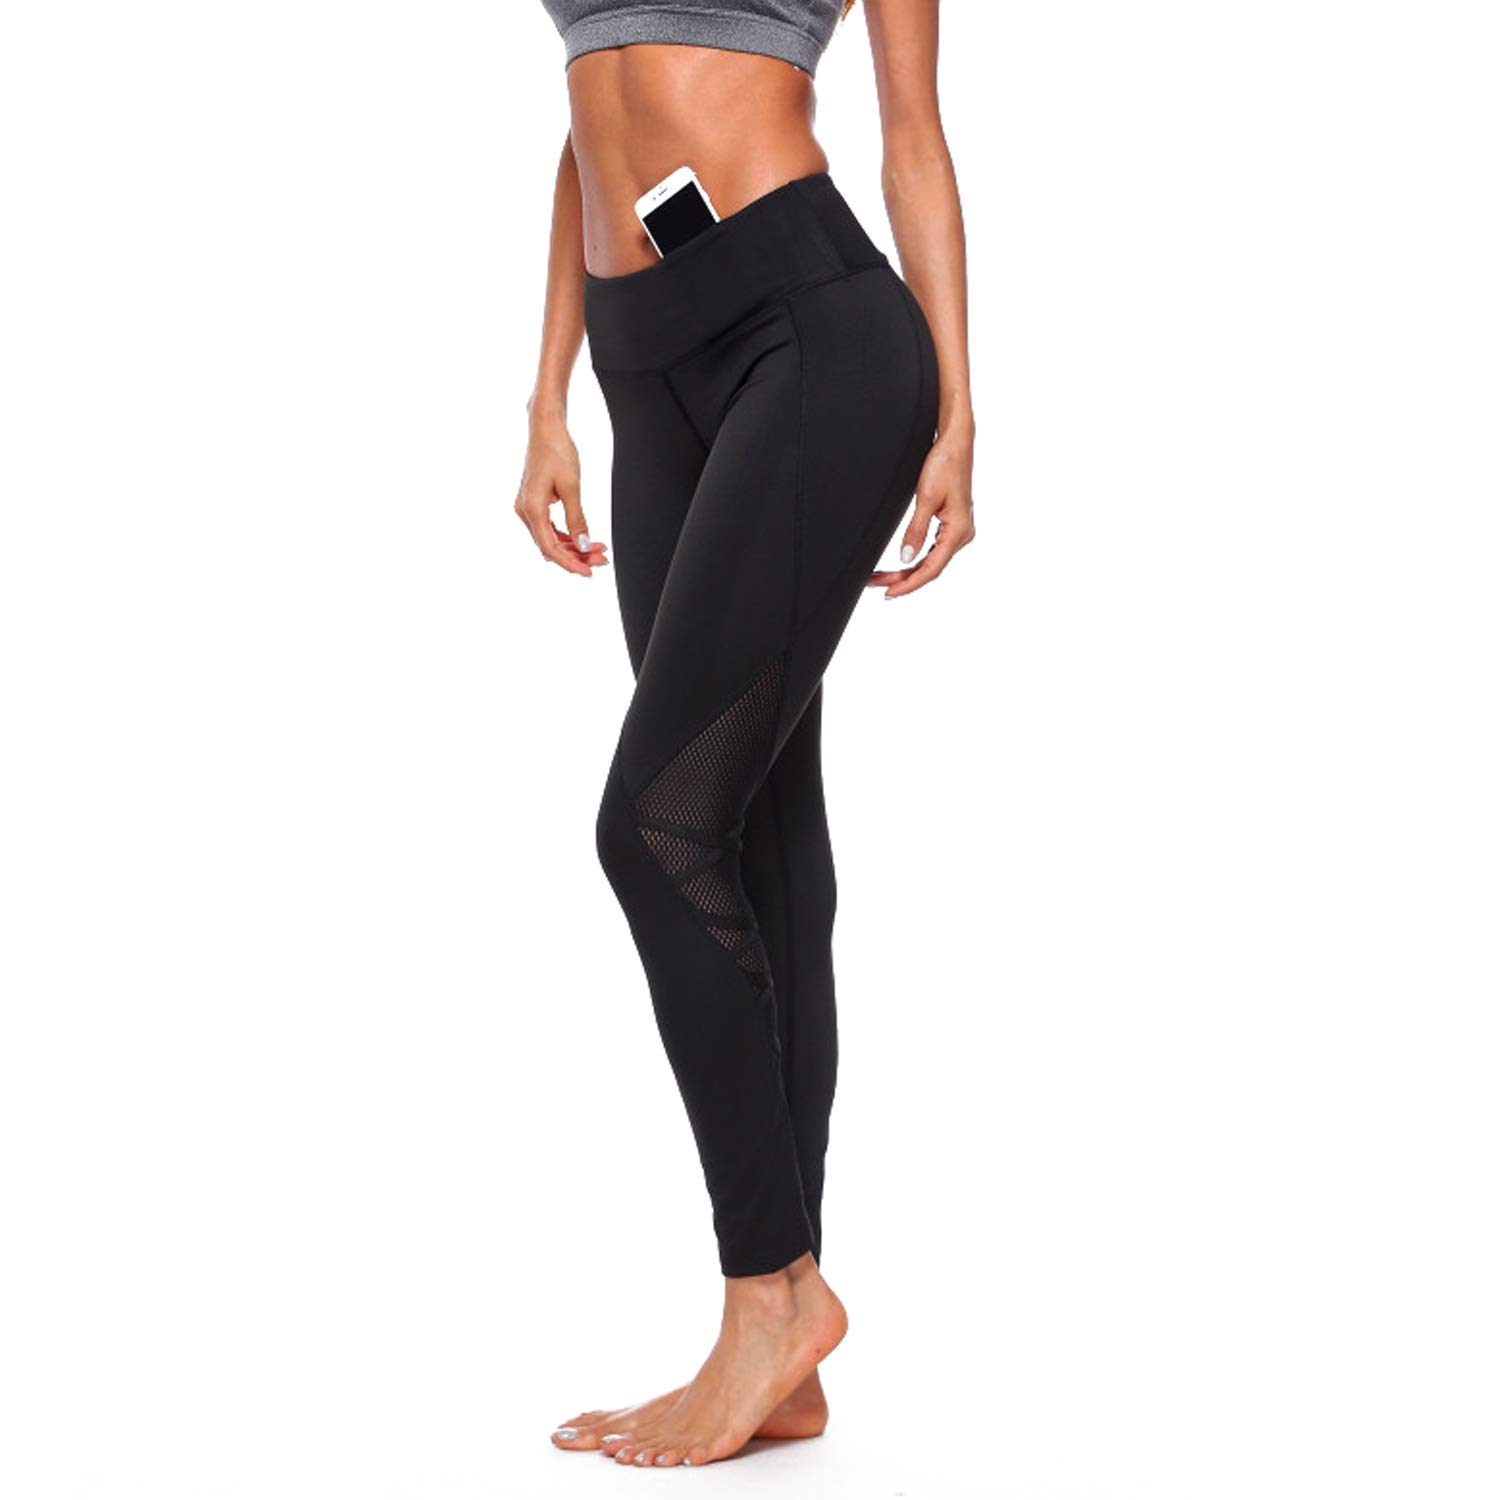 76e3adf219db2 Amazon.com : RIOJOY High Waisted Yoga Pants for Women Athletic Net Leggings  Tummy Control Workout Tights Gym Sports Trousers : Health & Personal Care